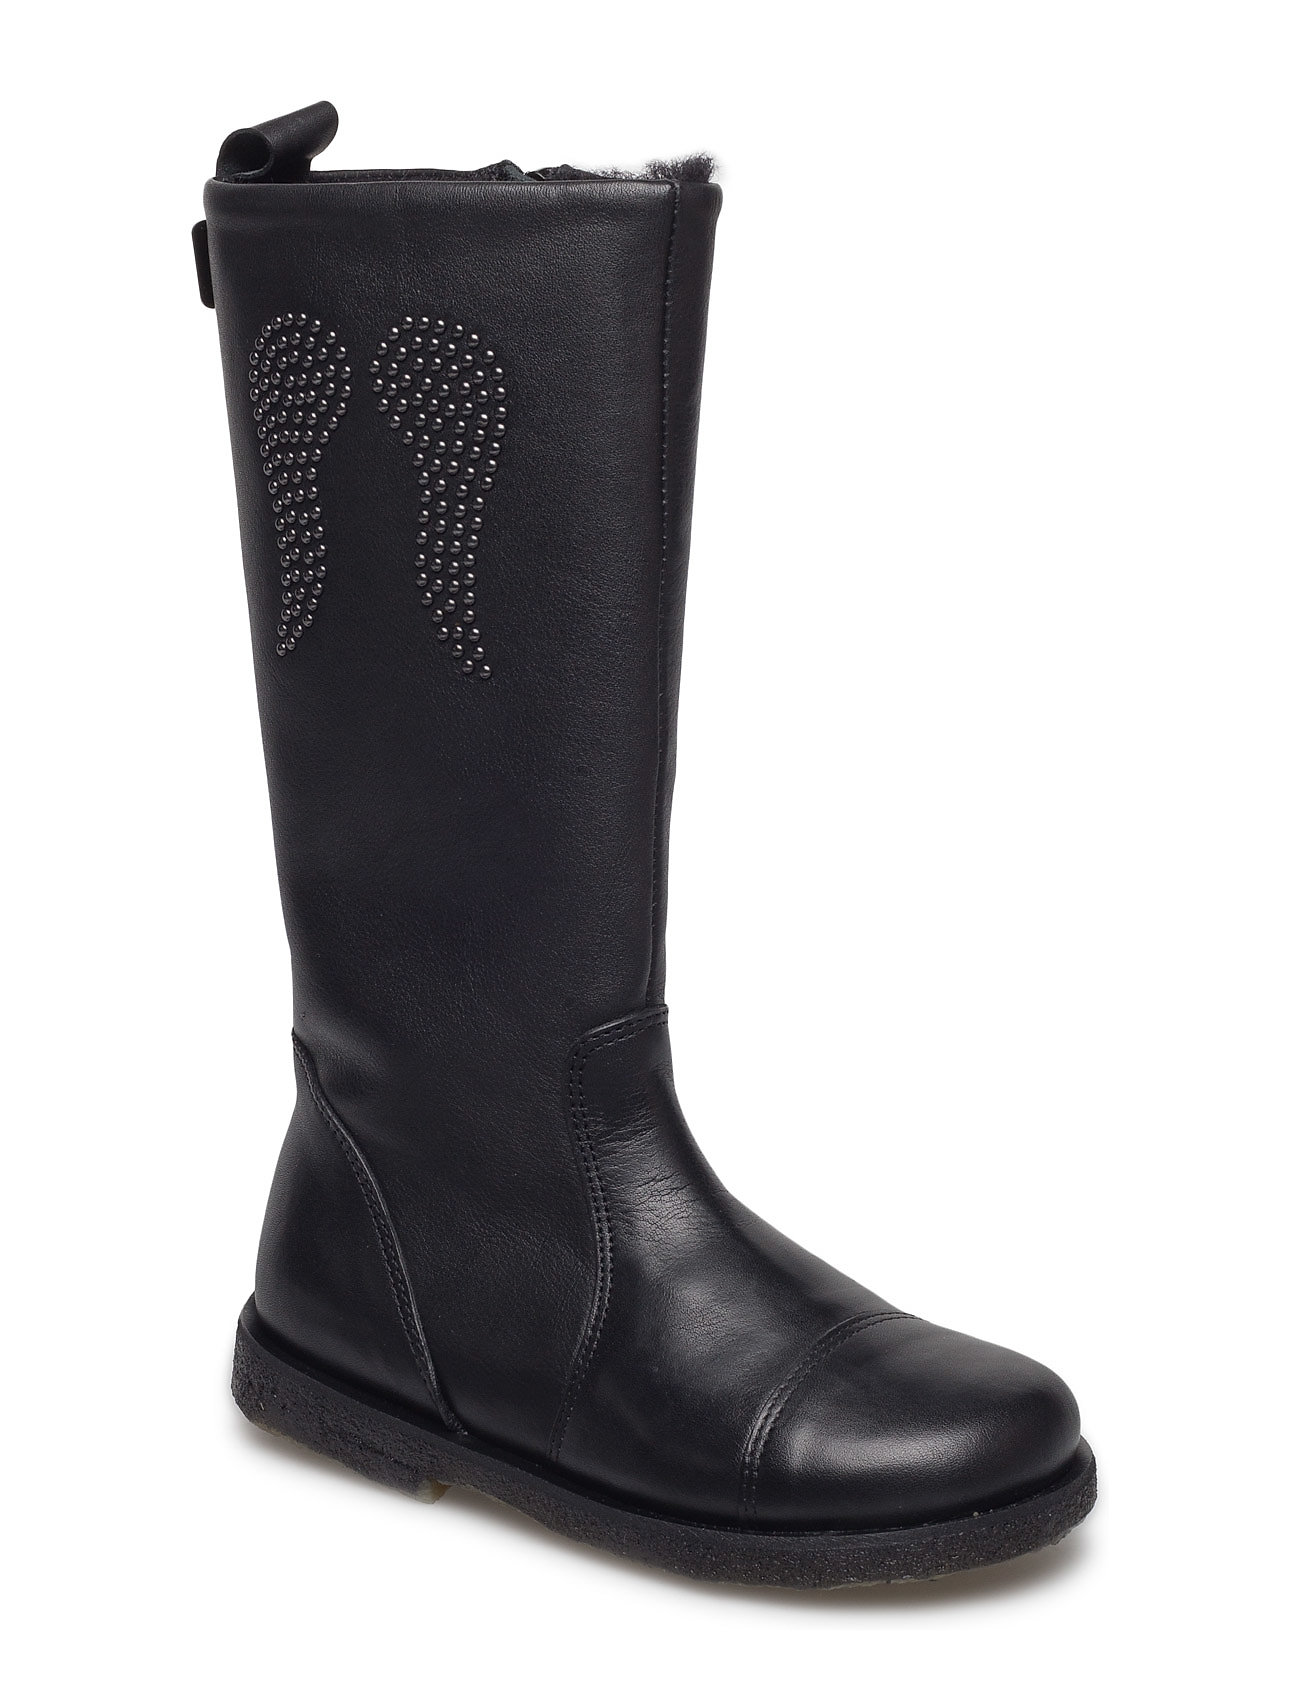 78c2a253a91 Leather Boot Tex (Black) (£84.15) - Petit by Sofie Schnoor - | Boozt.com